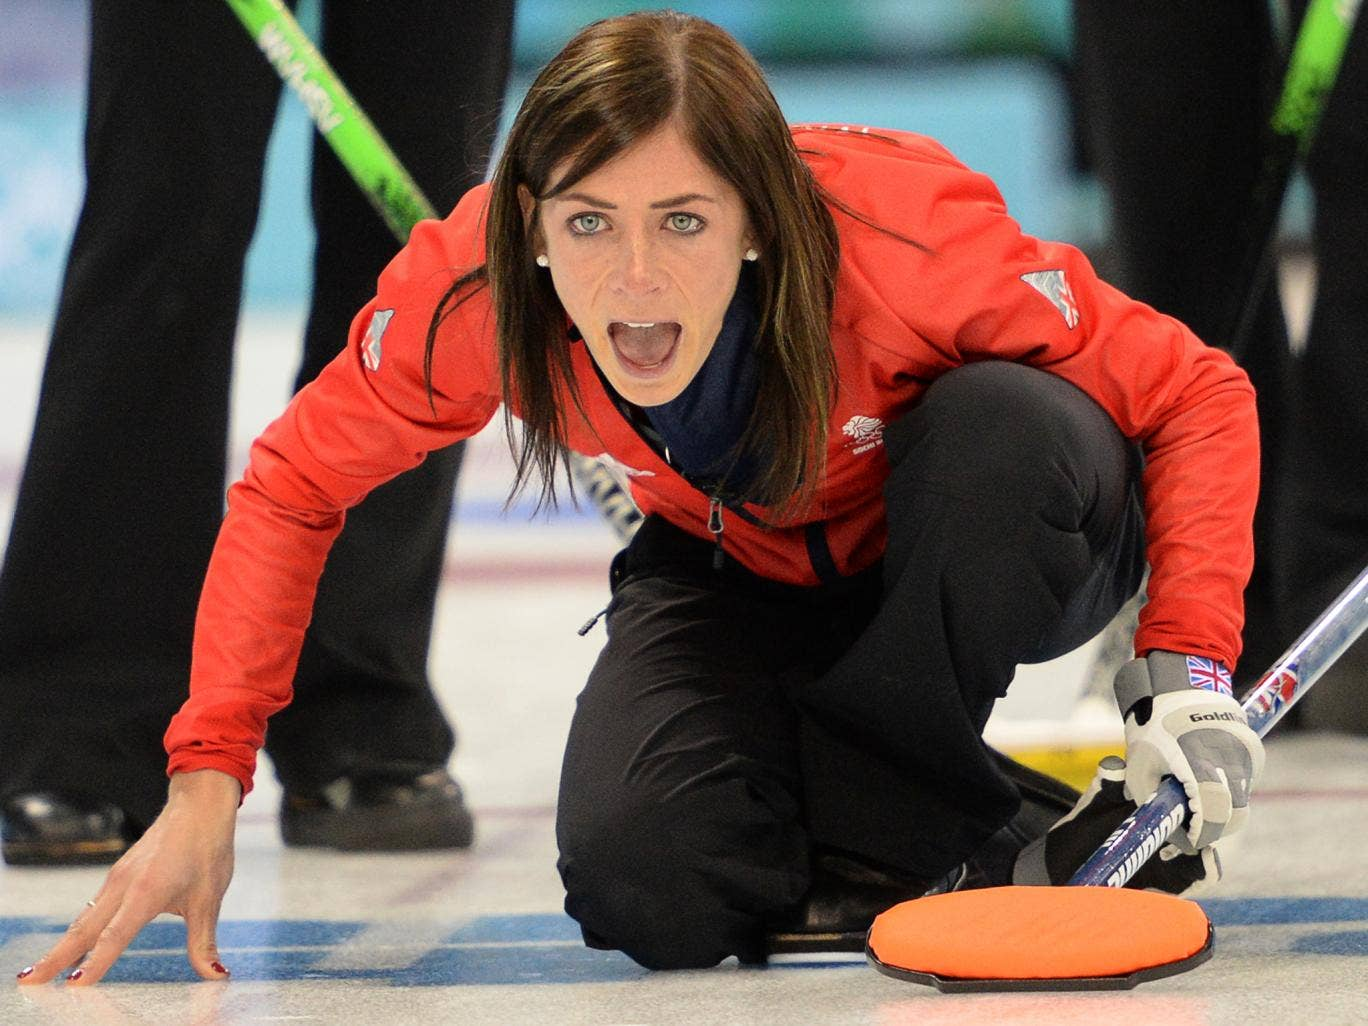 Great Britain women's curling team captain Eve Muirfield took three shots on the hammer to win their match with South Korea 10-8